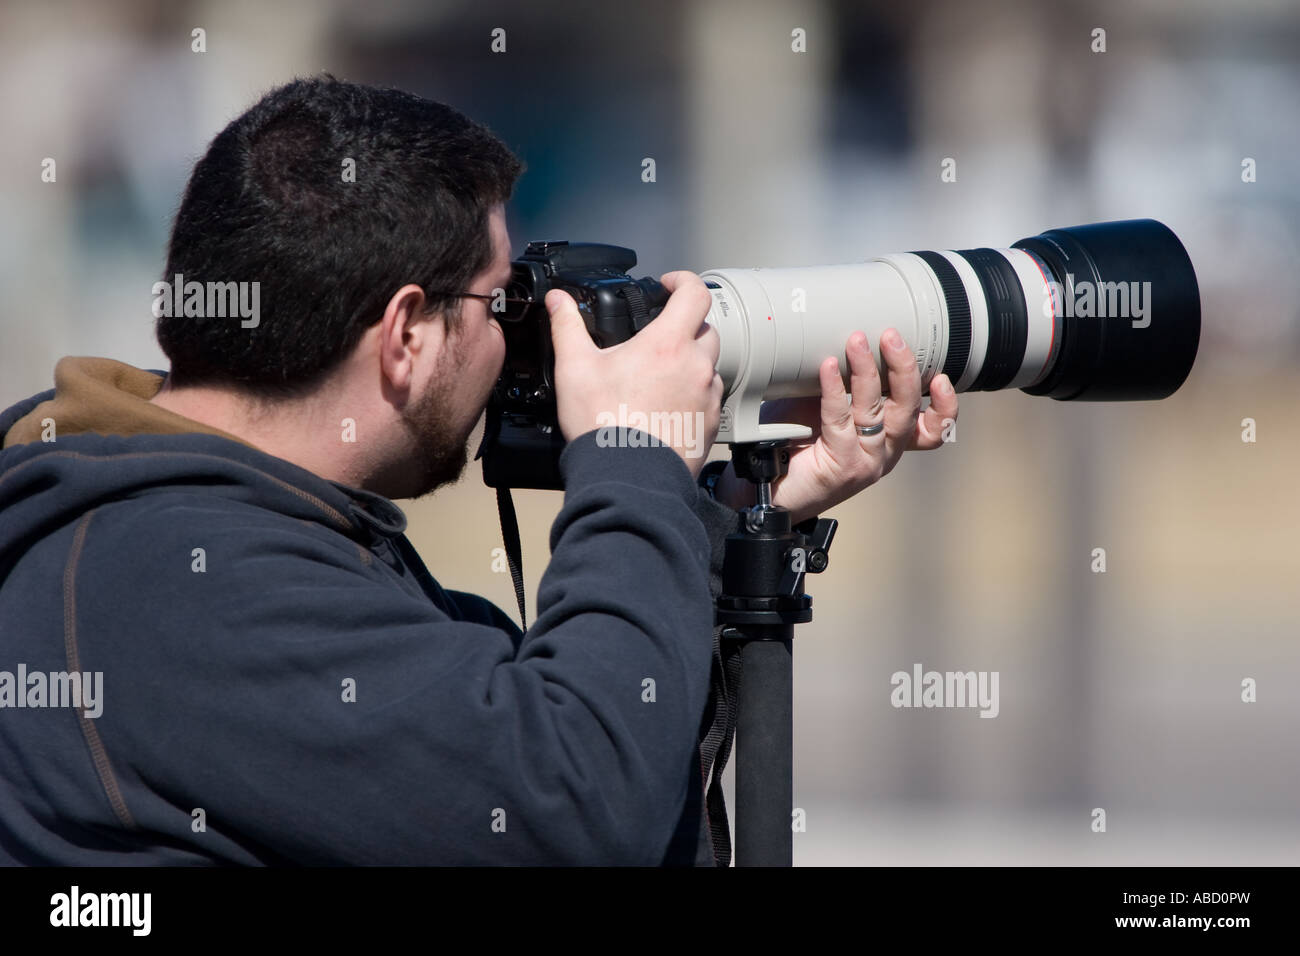 A photographer holds up a Canon 100-400L telephoto lens on an EOS 20D camera. - Stock Image